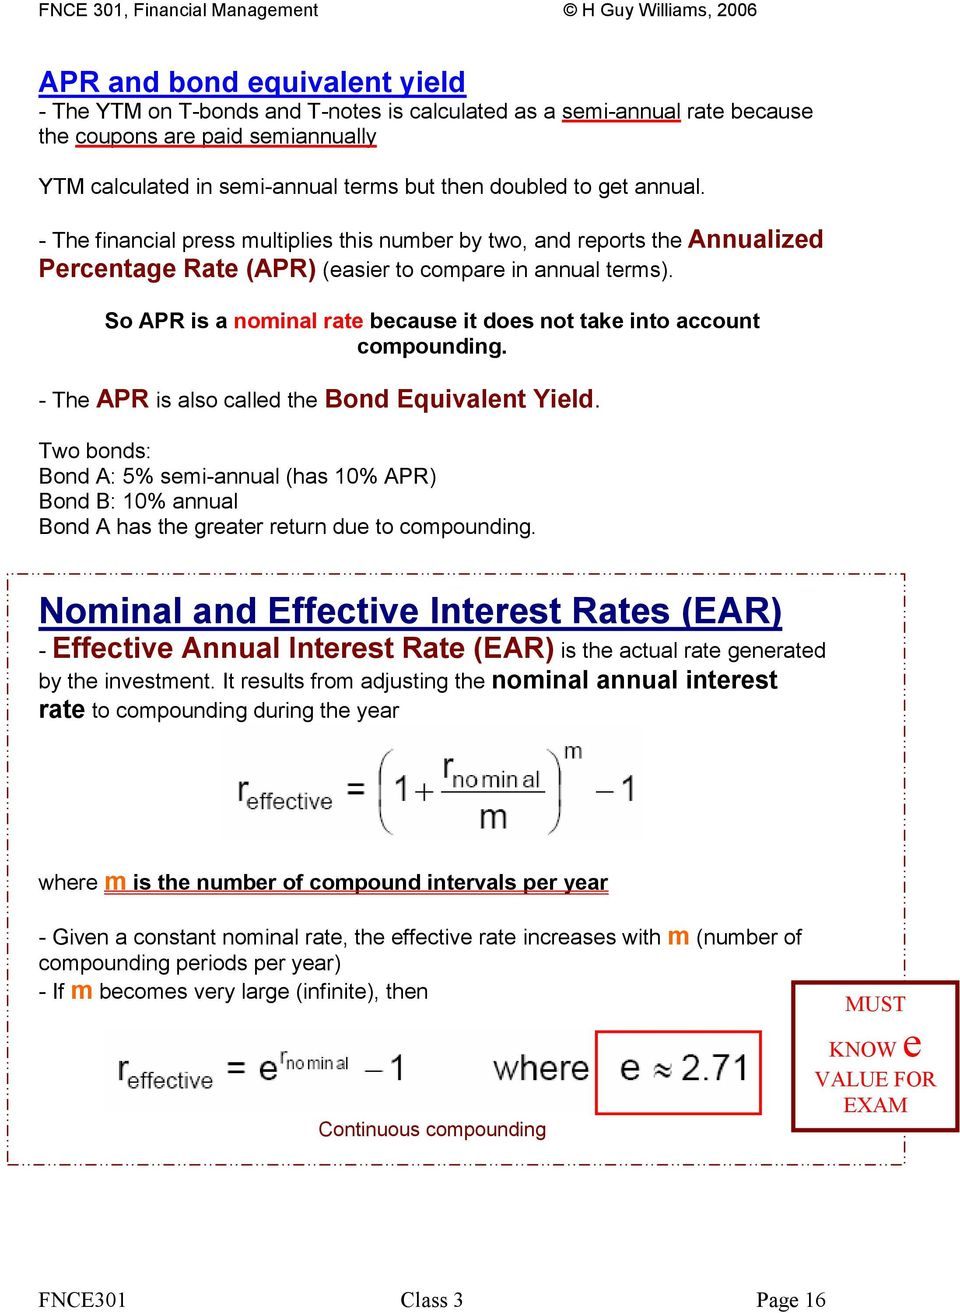 So APR is a nominal rate because it does not take into account compounding. - The APR is also called the Bond Equivalent Yield.